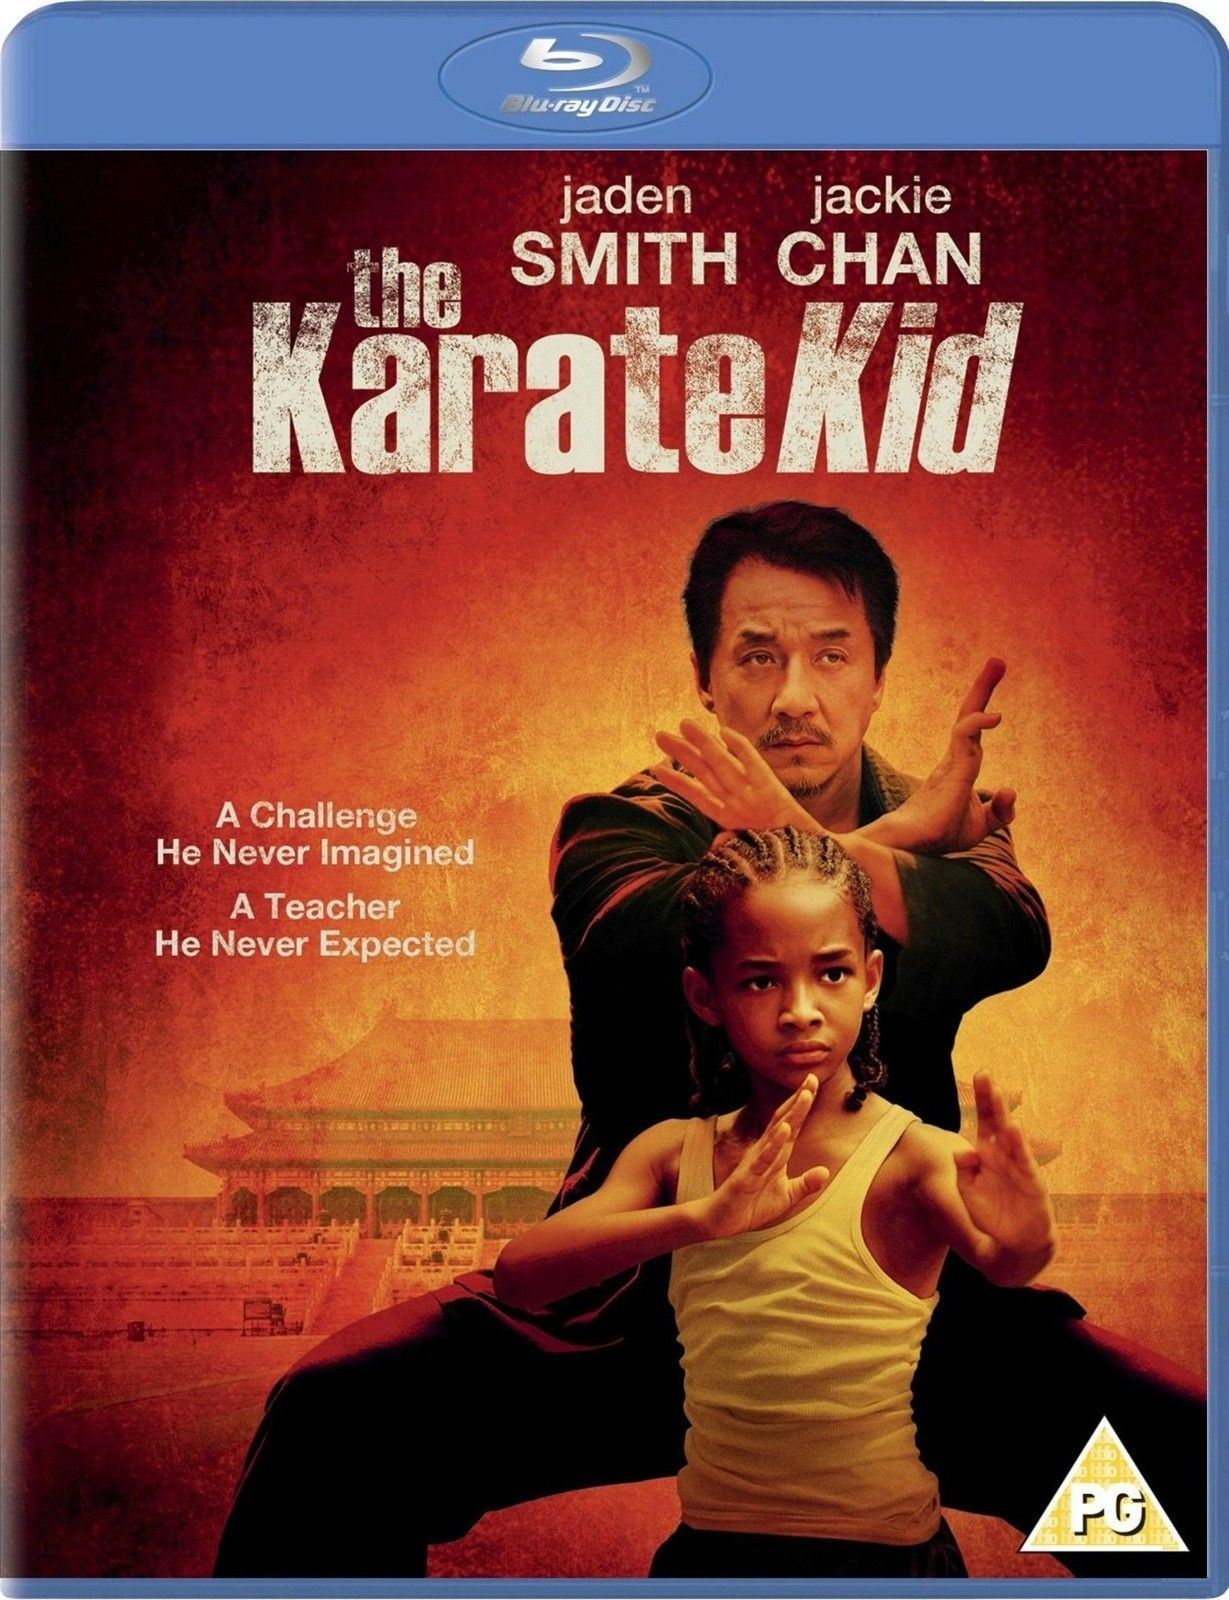 Karate Kid 2 With Jackie Chan Karate Kid